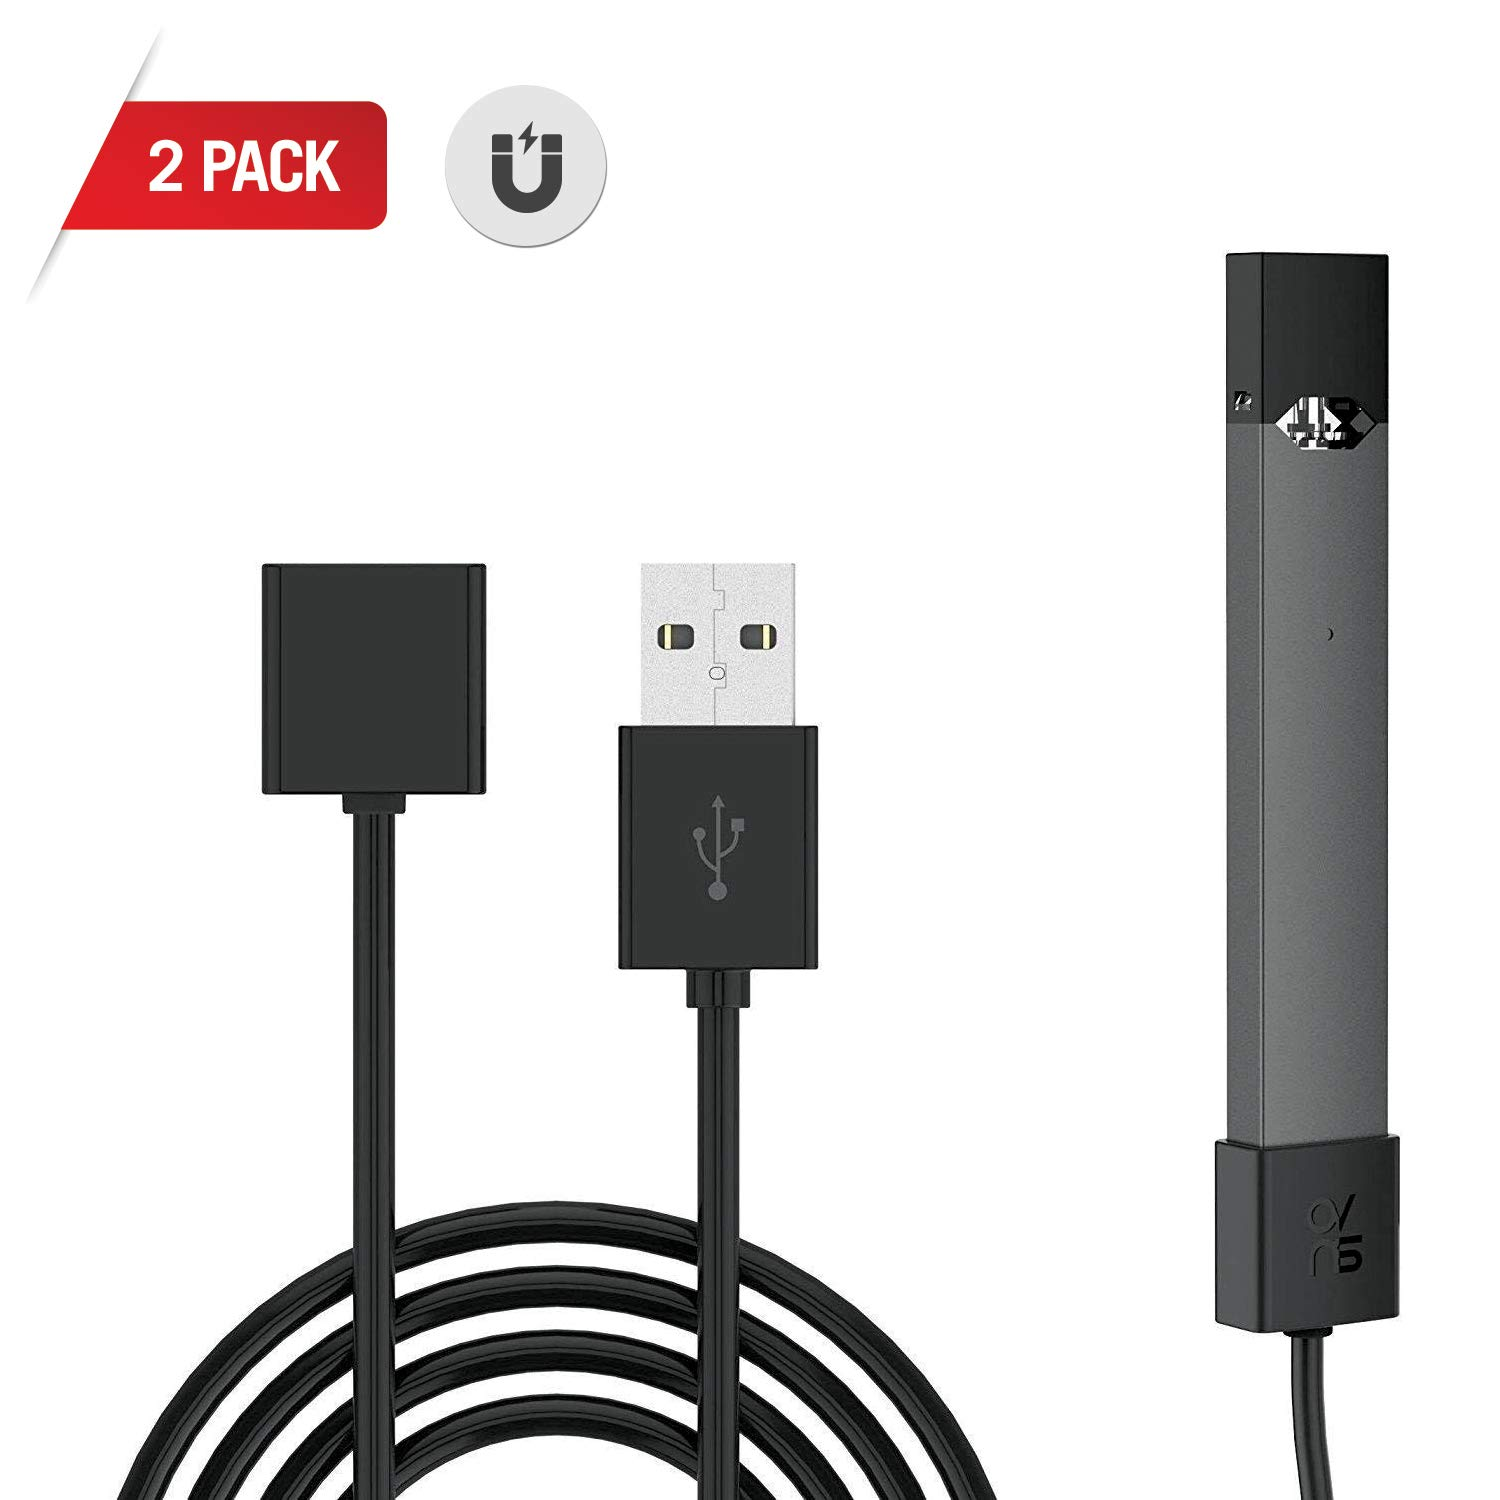 JUU L Magnetic Charger USB Cable - 2.6 Ft Cord (2 Pack)